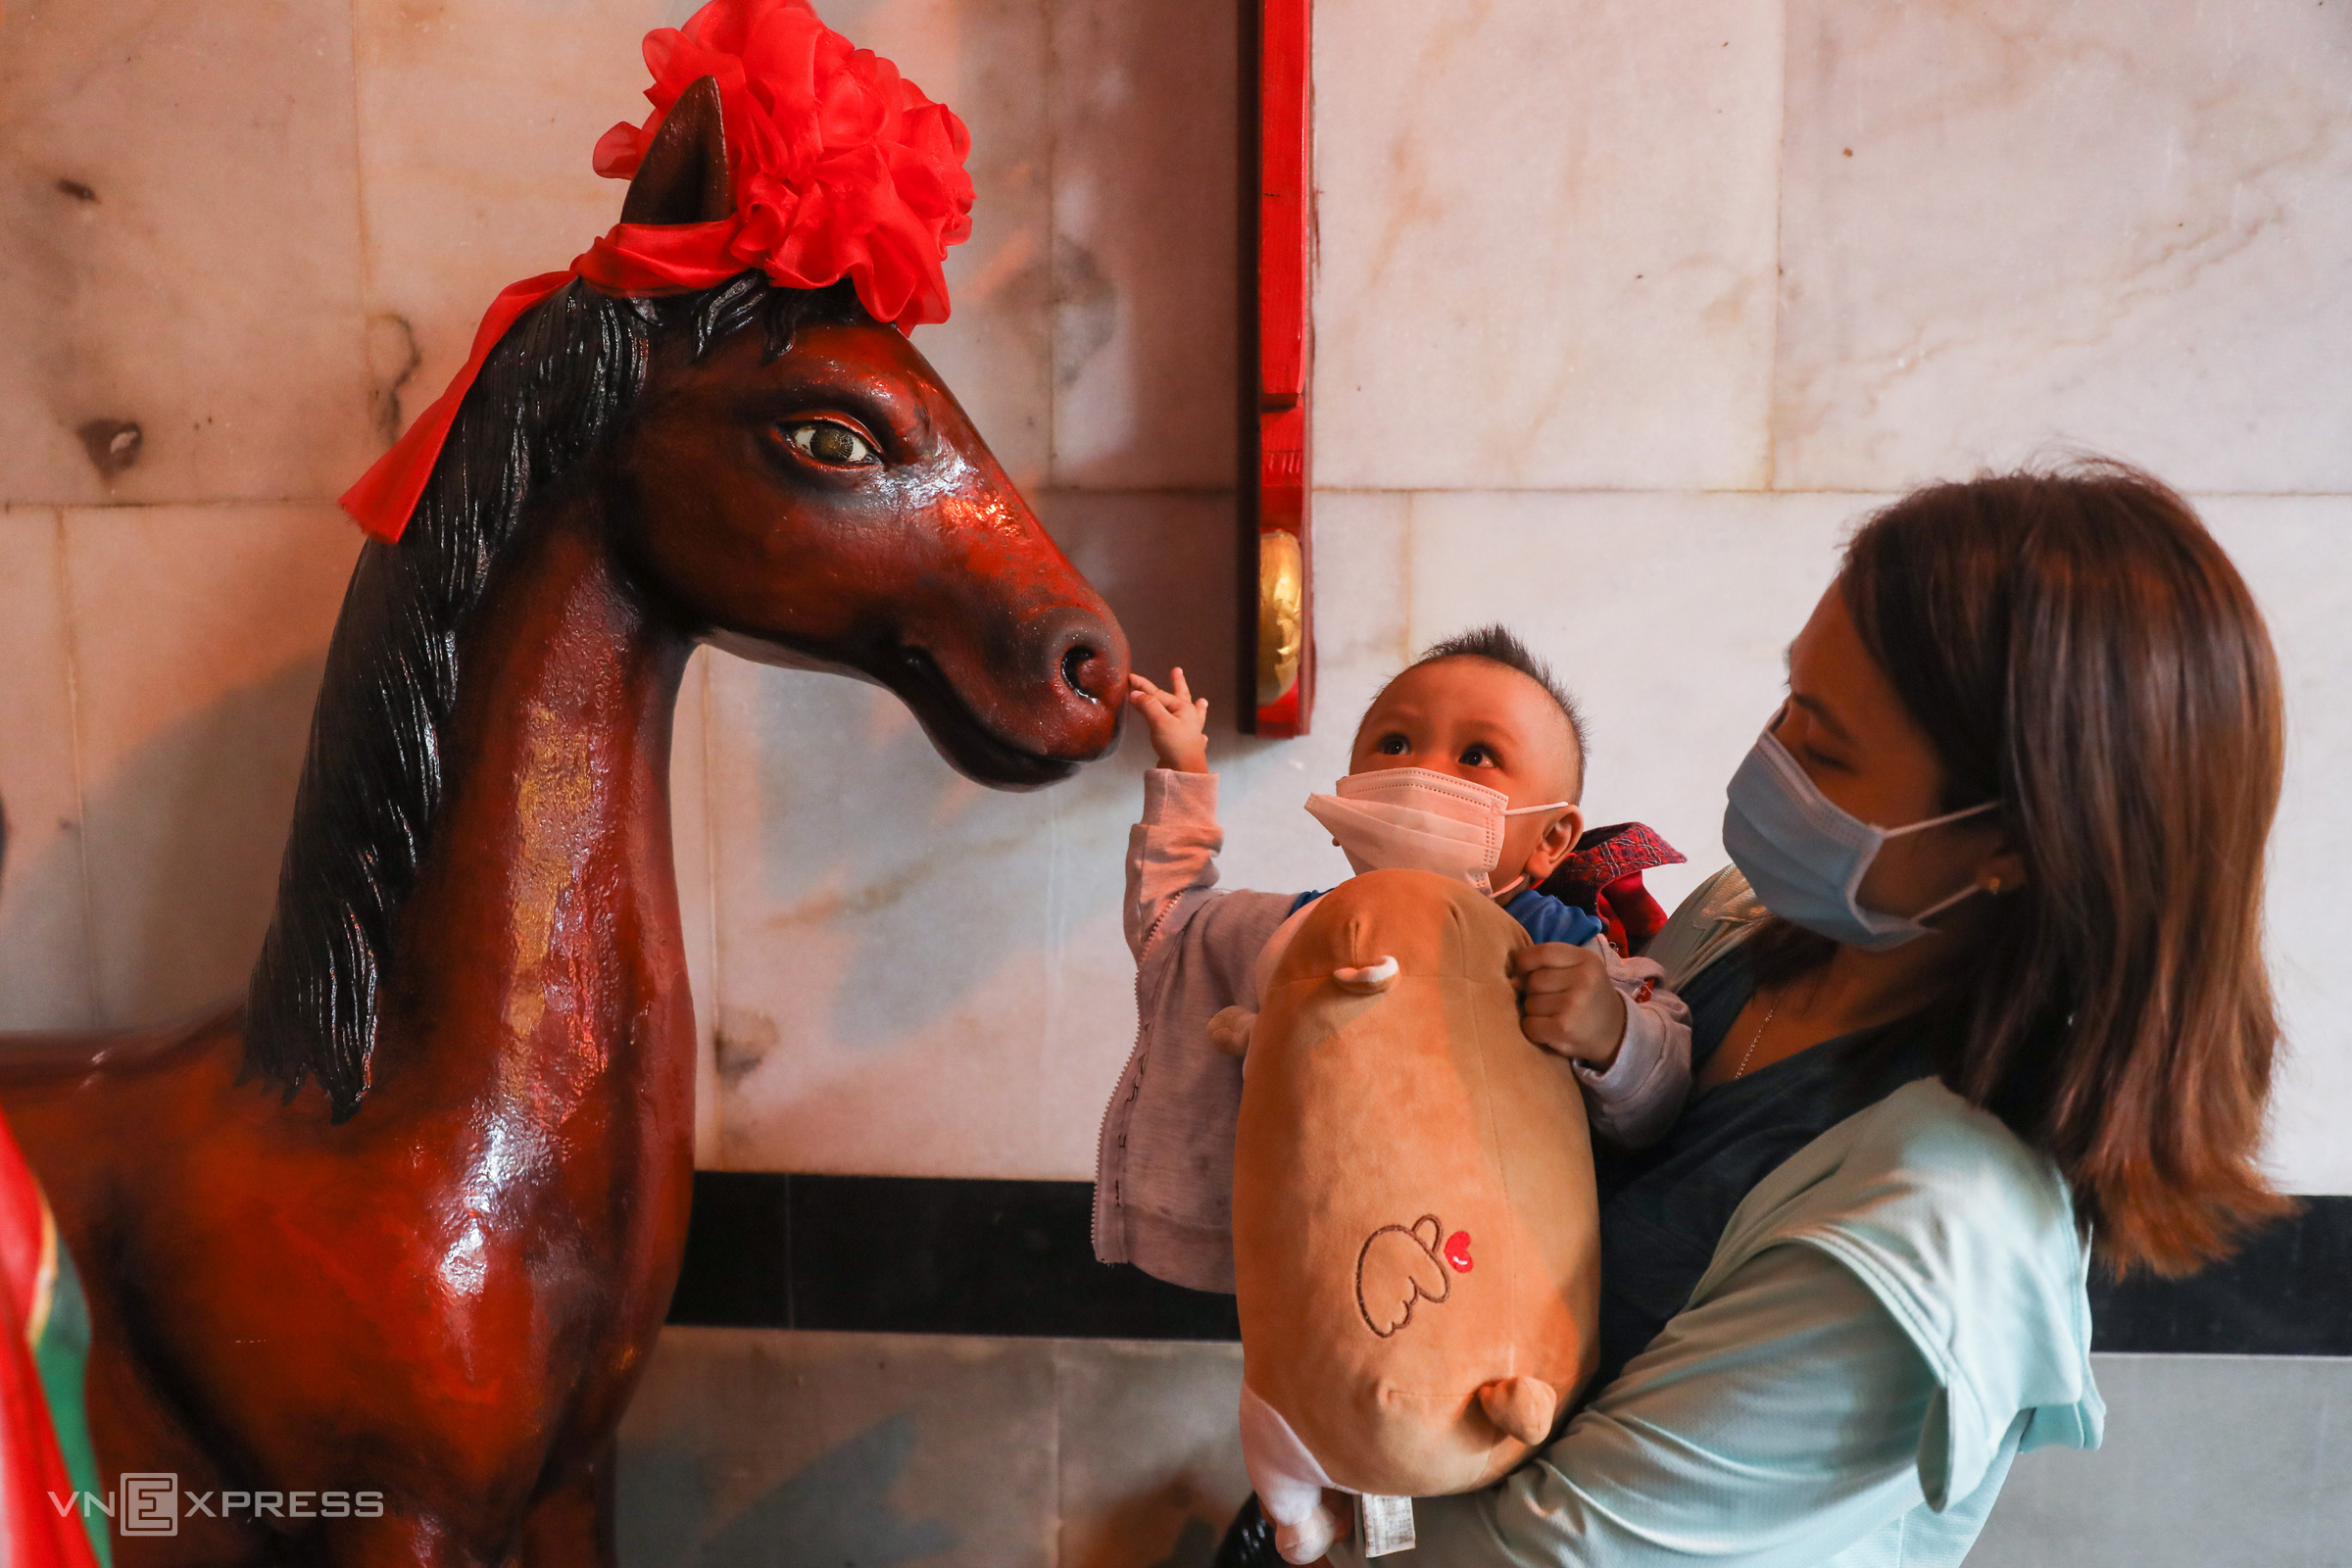 Some visitors prefer to touch the auspicious horse and Quan Cong statue in the main hall as a nice gesture at the start of the year. My family and I visit Ong Pagoda each year to pray for good fortune and health for the family, Luu My Linh from District 10 said while directing her son towards Red Hare.